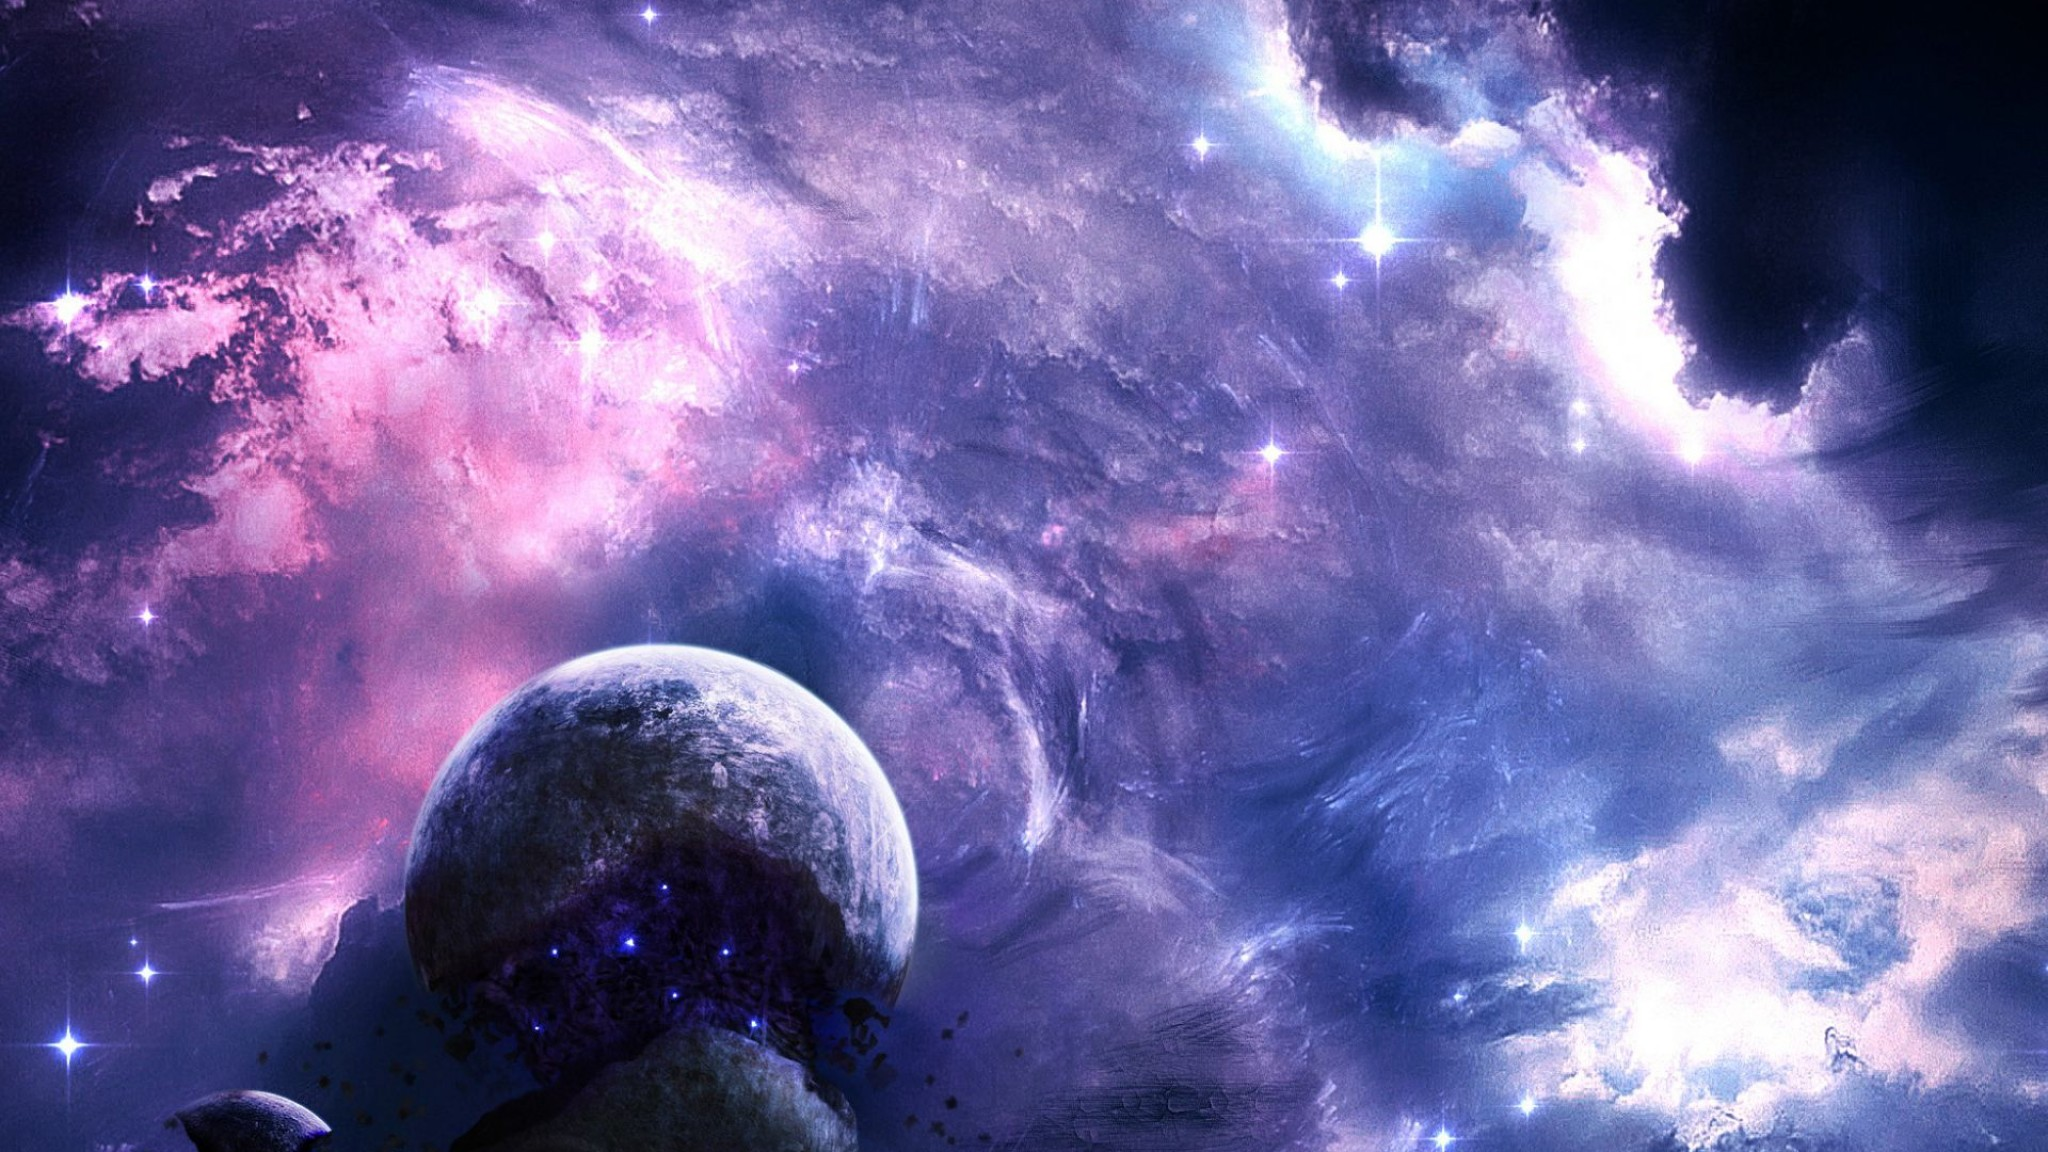 For Youtube Channel Art Galaxy 2048x1152 HD Walls Find Wallpapers 2048x1152